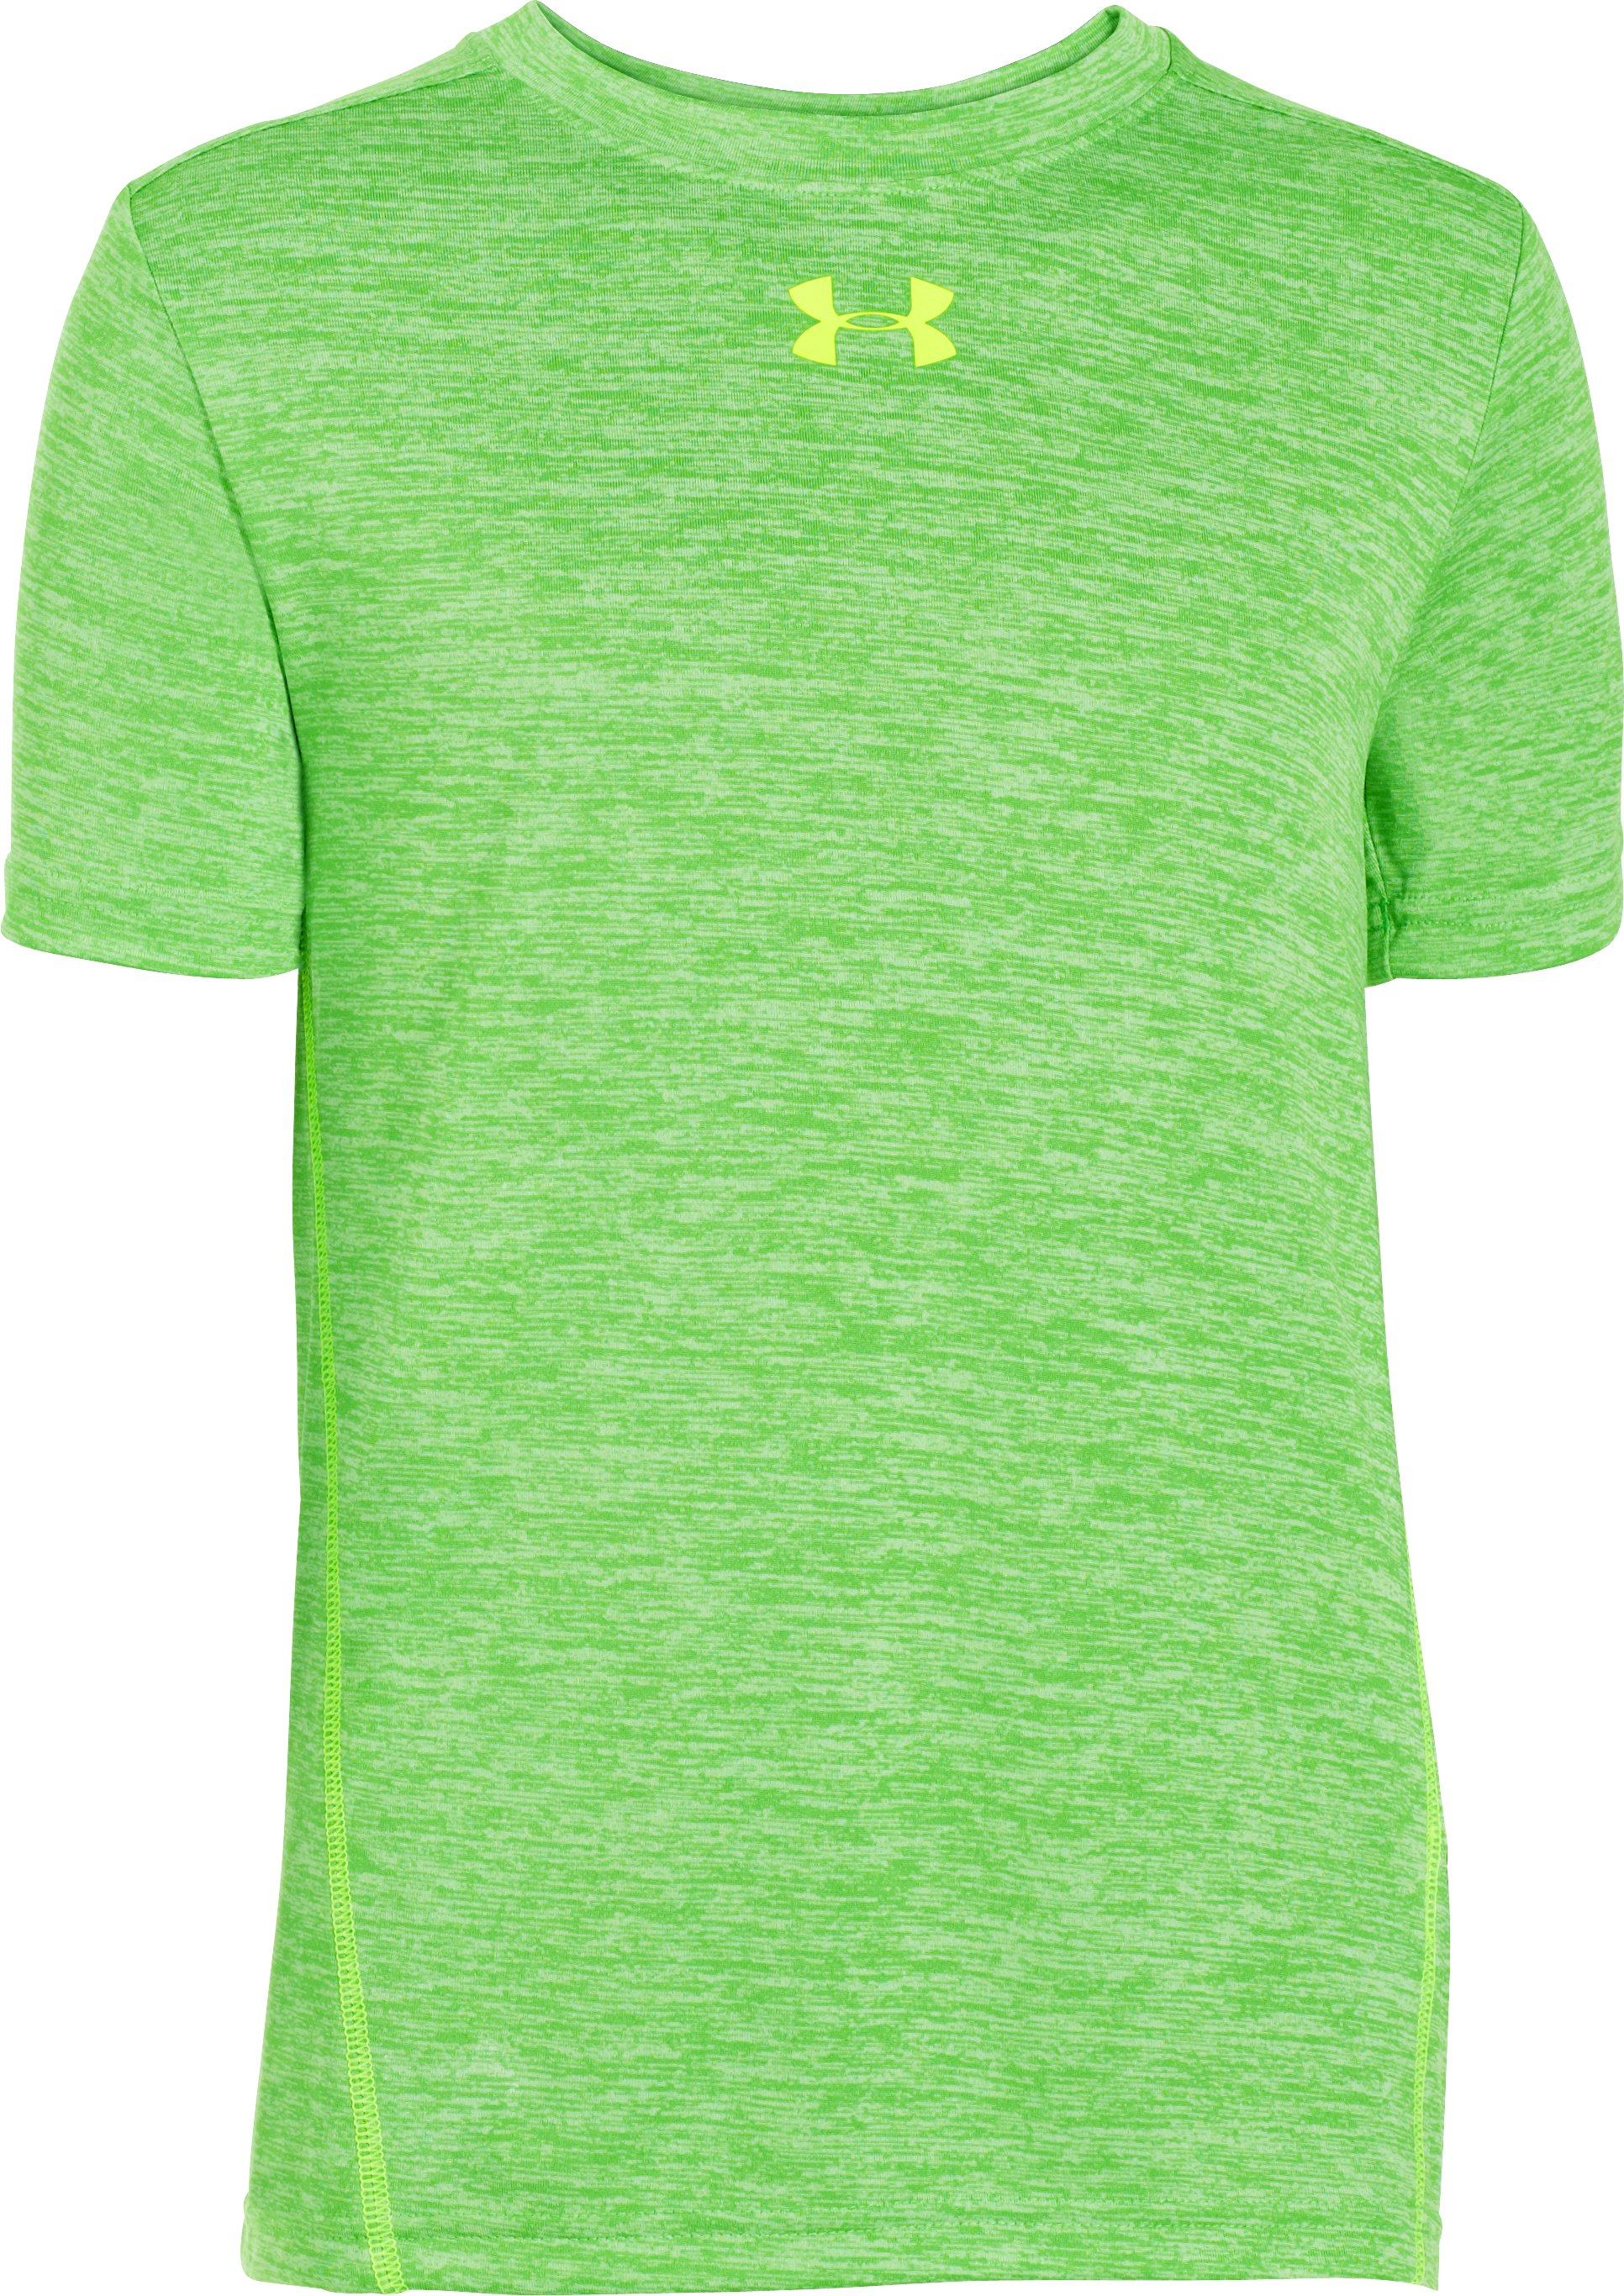 Boys' UA Tech™ Twist Short Sleeve T-Shirt, Lizard, zoomed image